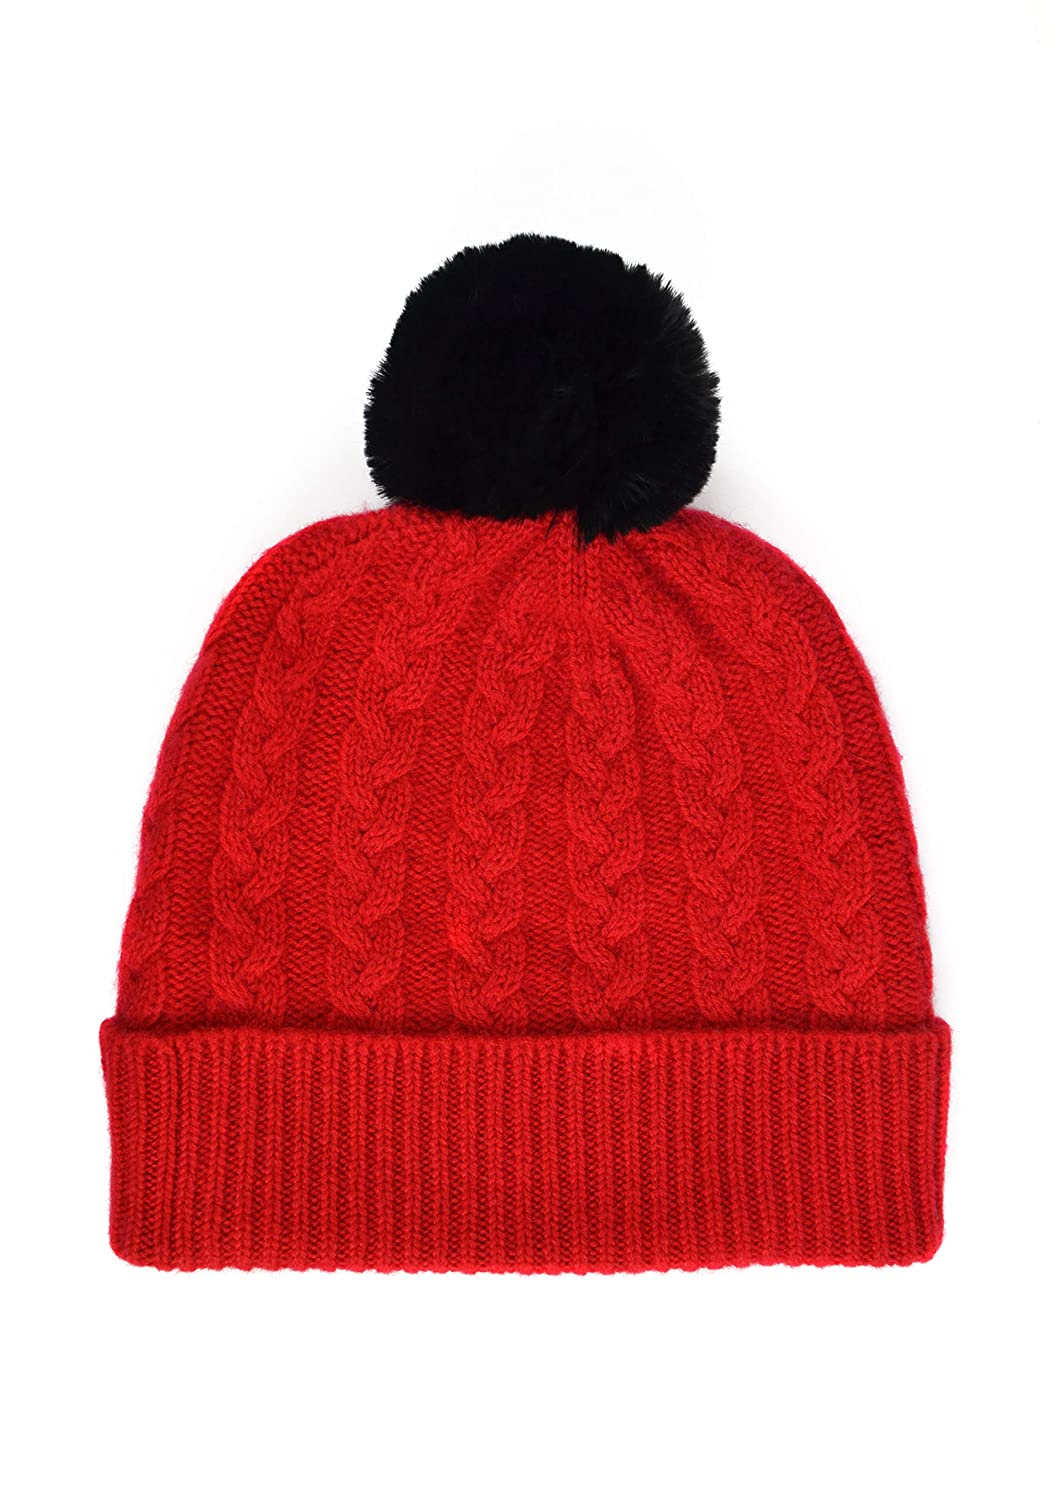 William Lockie Ladies Cashmere Cable Hat in Cardinal Red with Black Faux Fur Pom Pom Made in Scotland